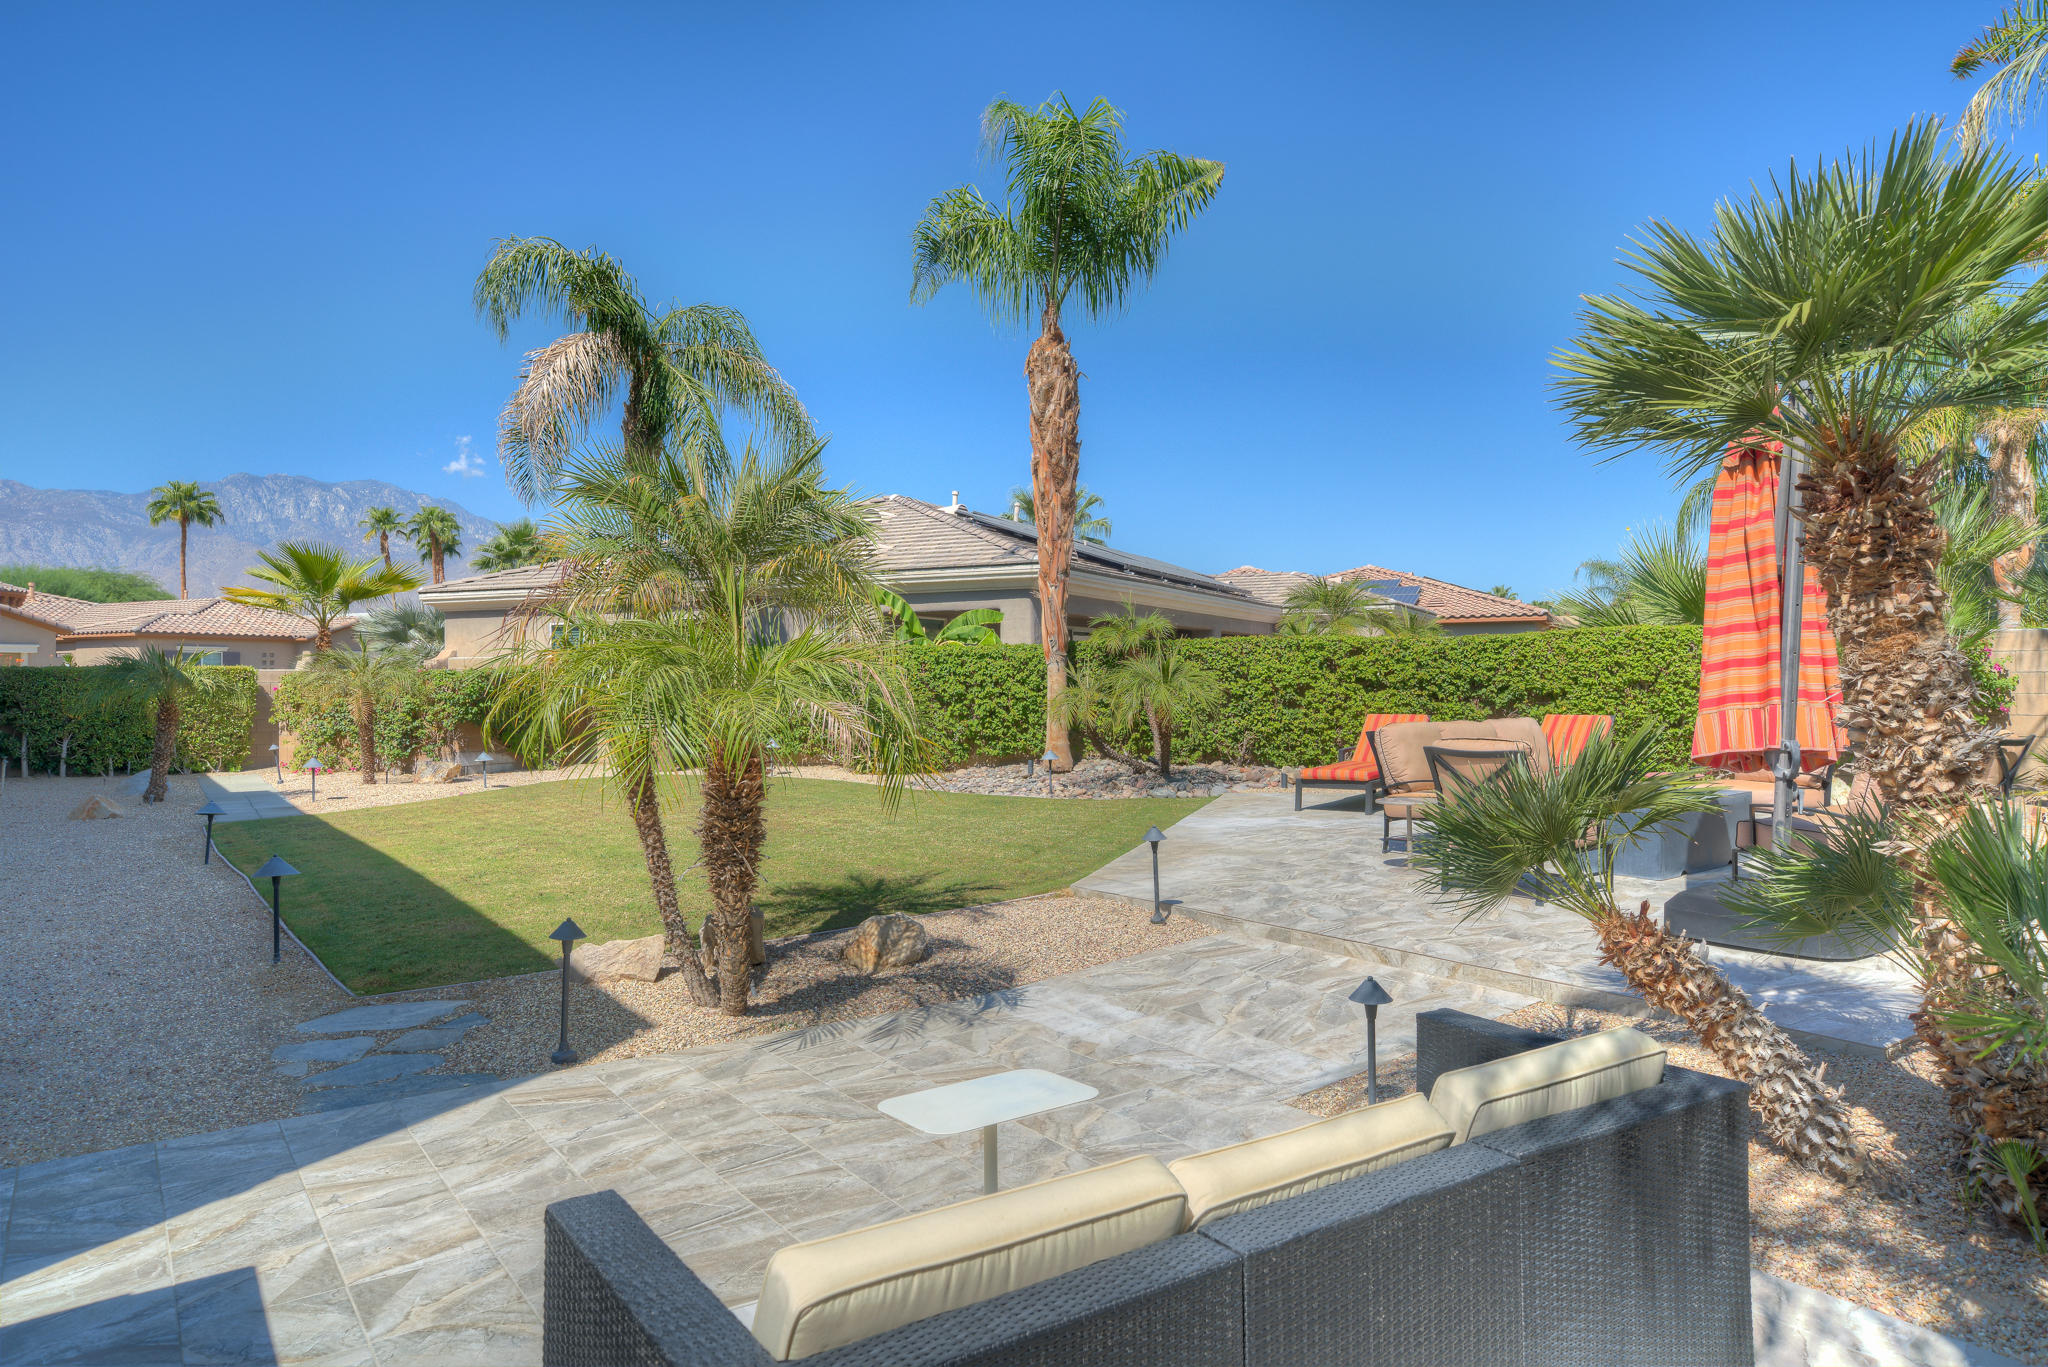 36386 Dali Drive, Cathedral City, California 92234, 5 Bedrooms Bedrooms, ,4 BathroomsBathrooms,Residential,Sold,36386 Dali Drive,219030579